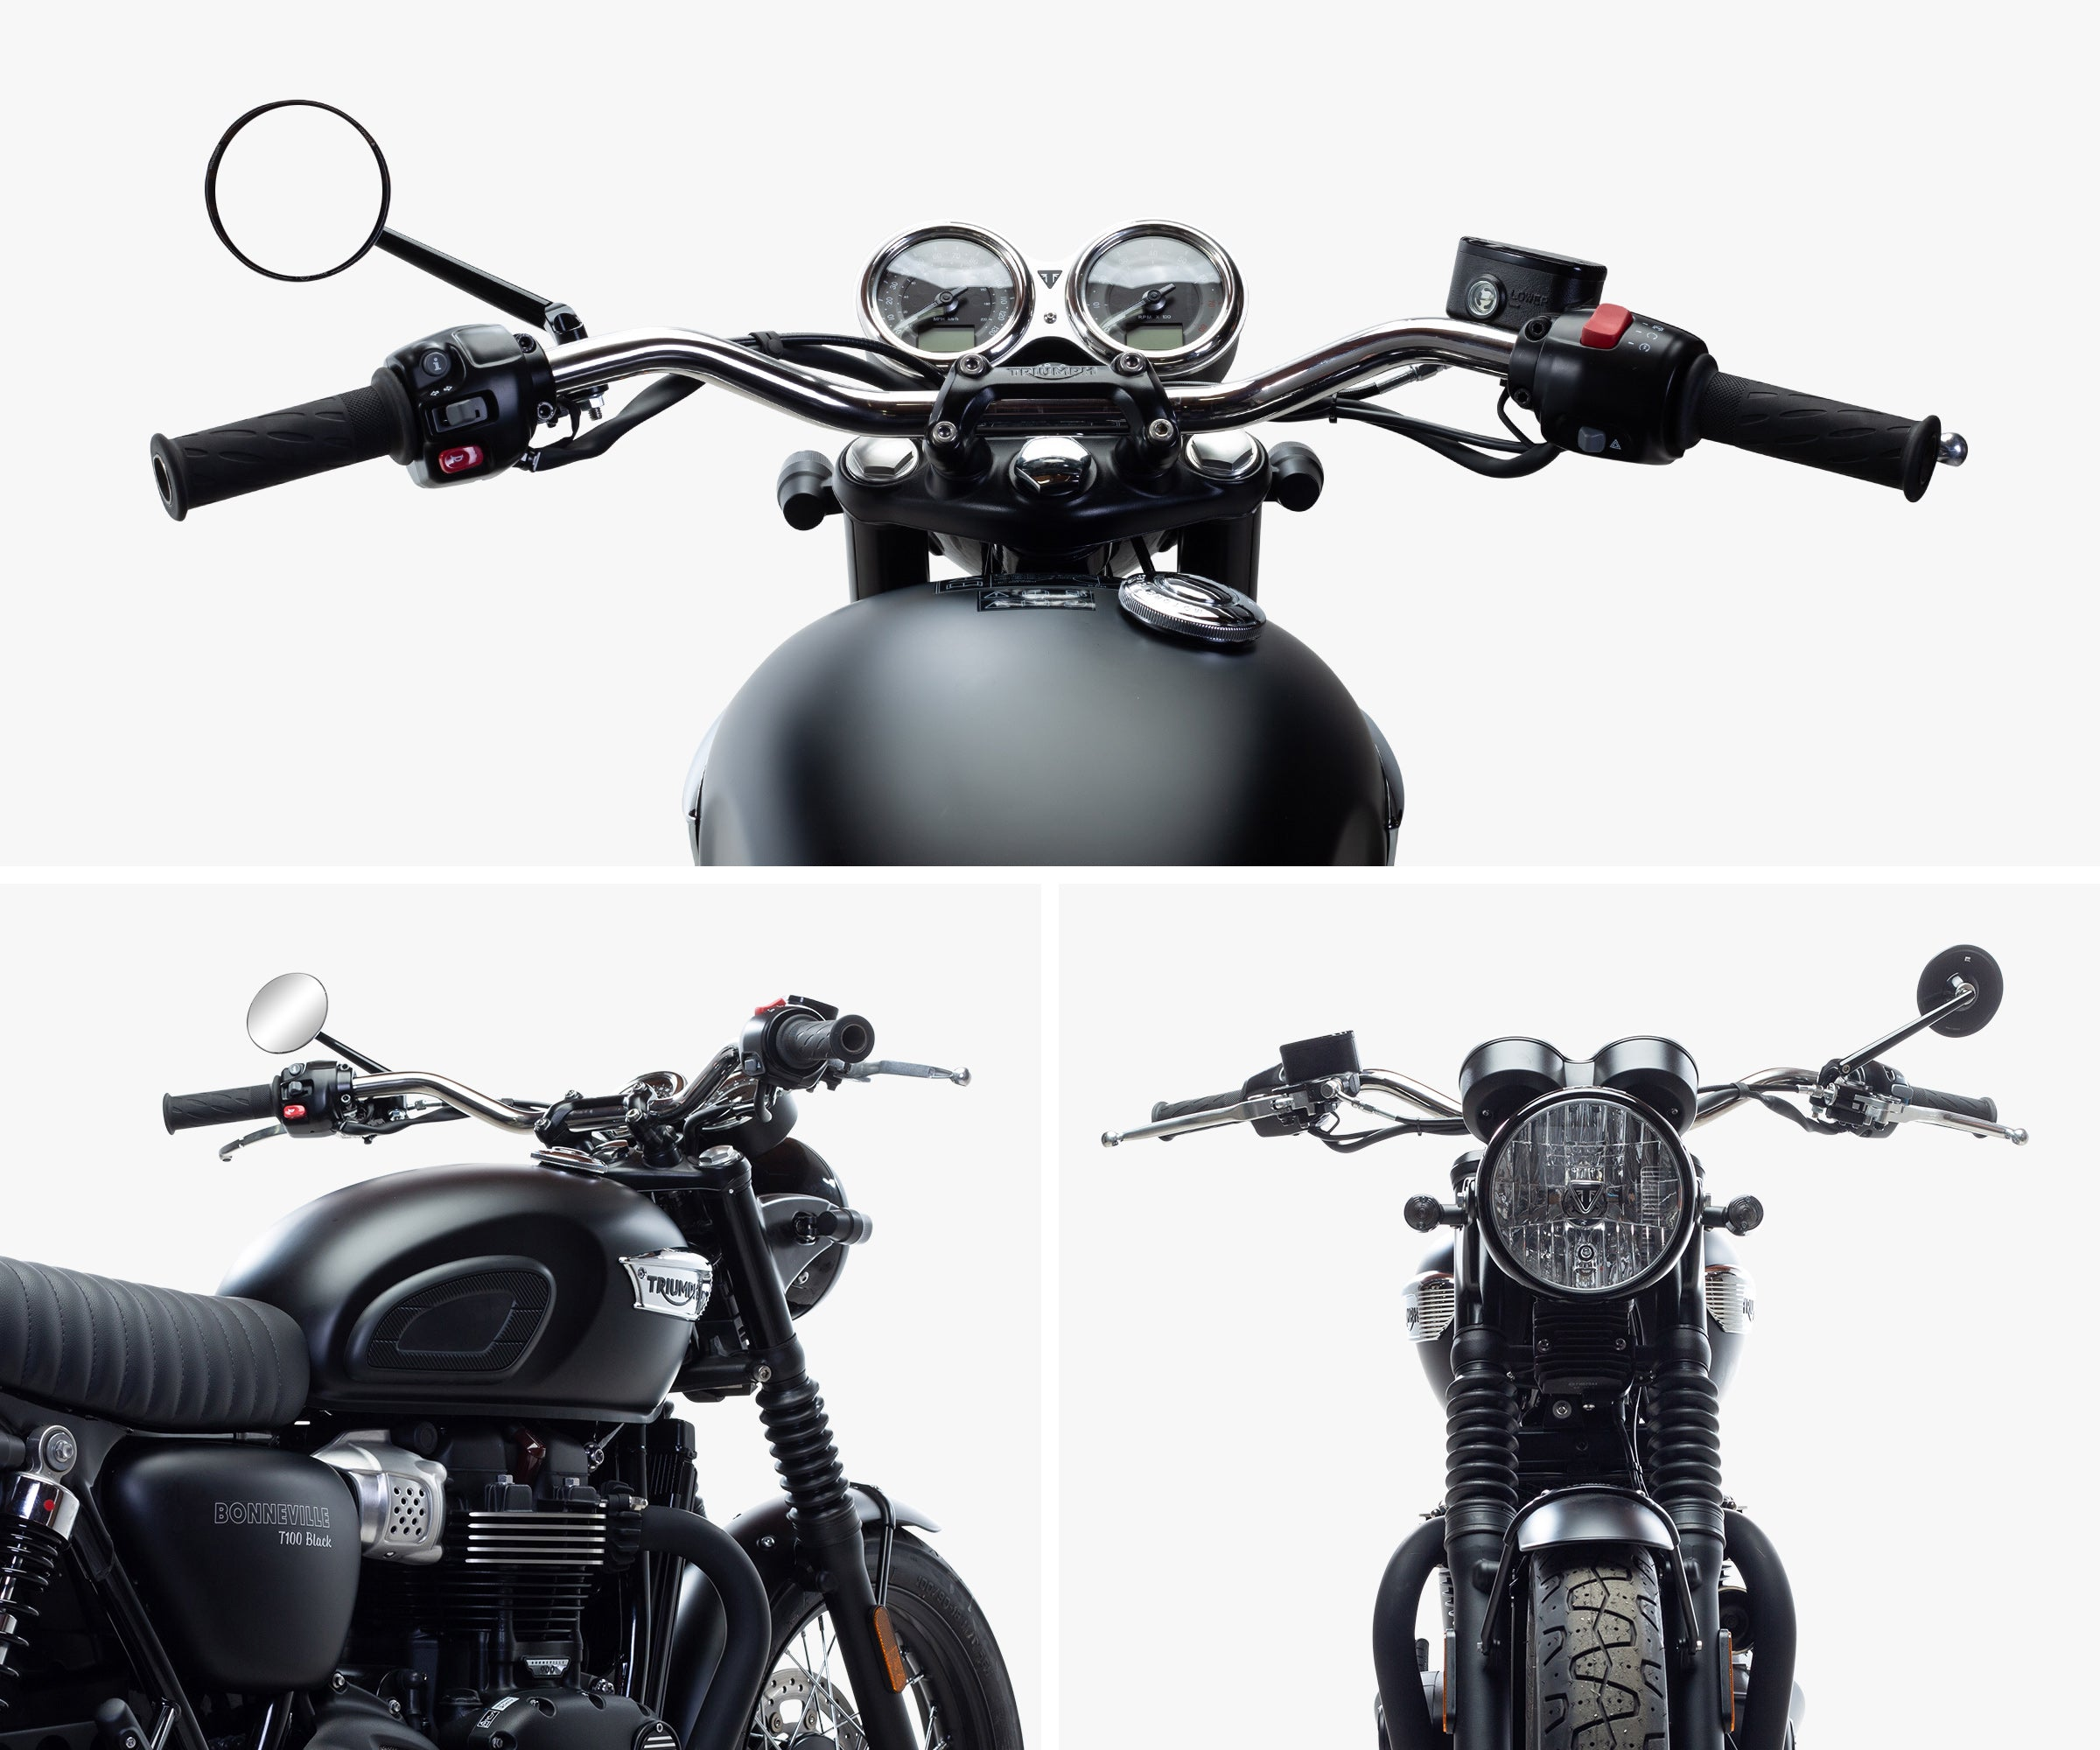 British Customs Triumph Bonneville T100/T120 Tracker Handlebar Kit